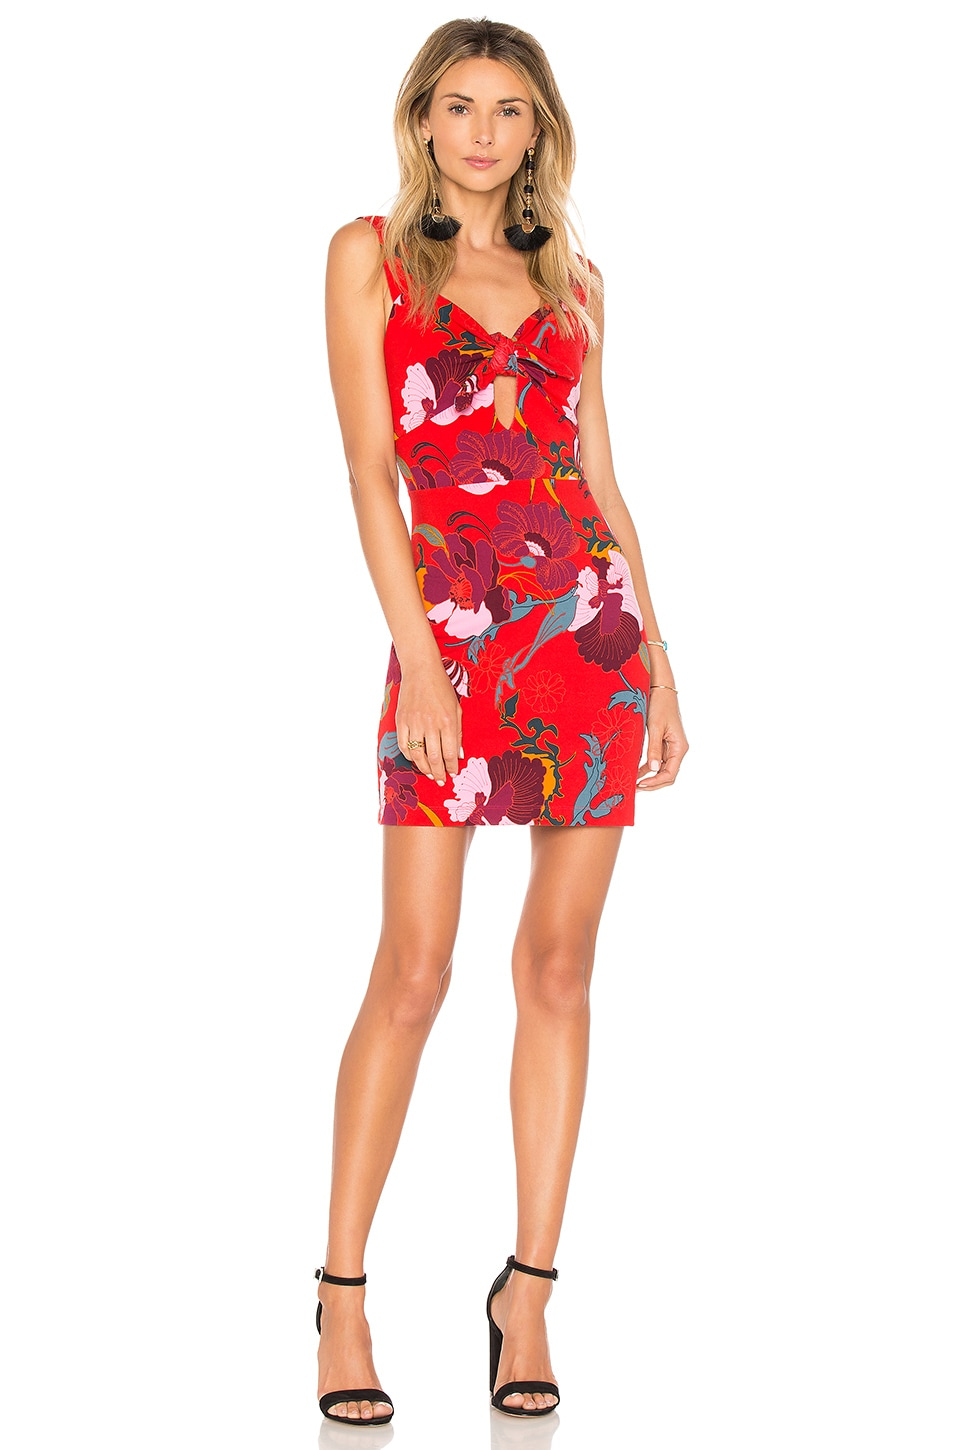 Free People Sweet Cherry Mini Dress in Red